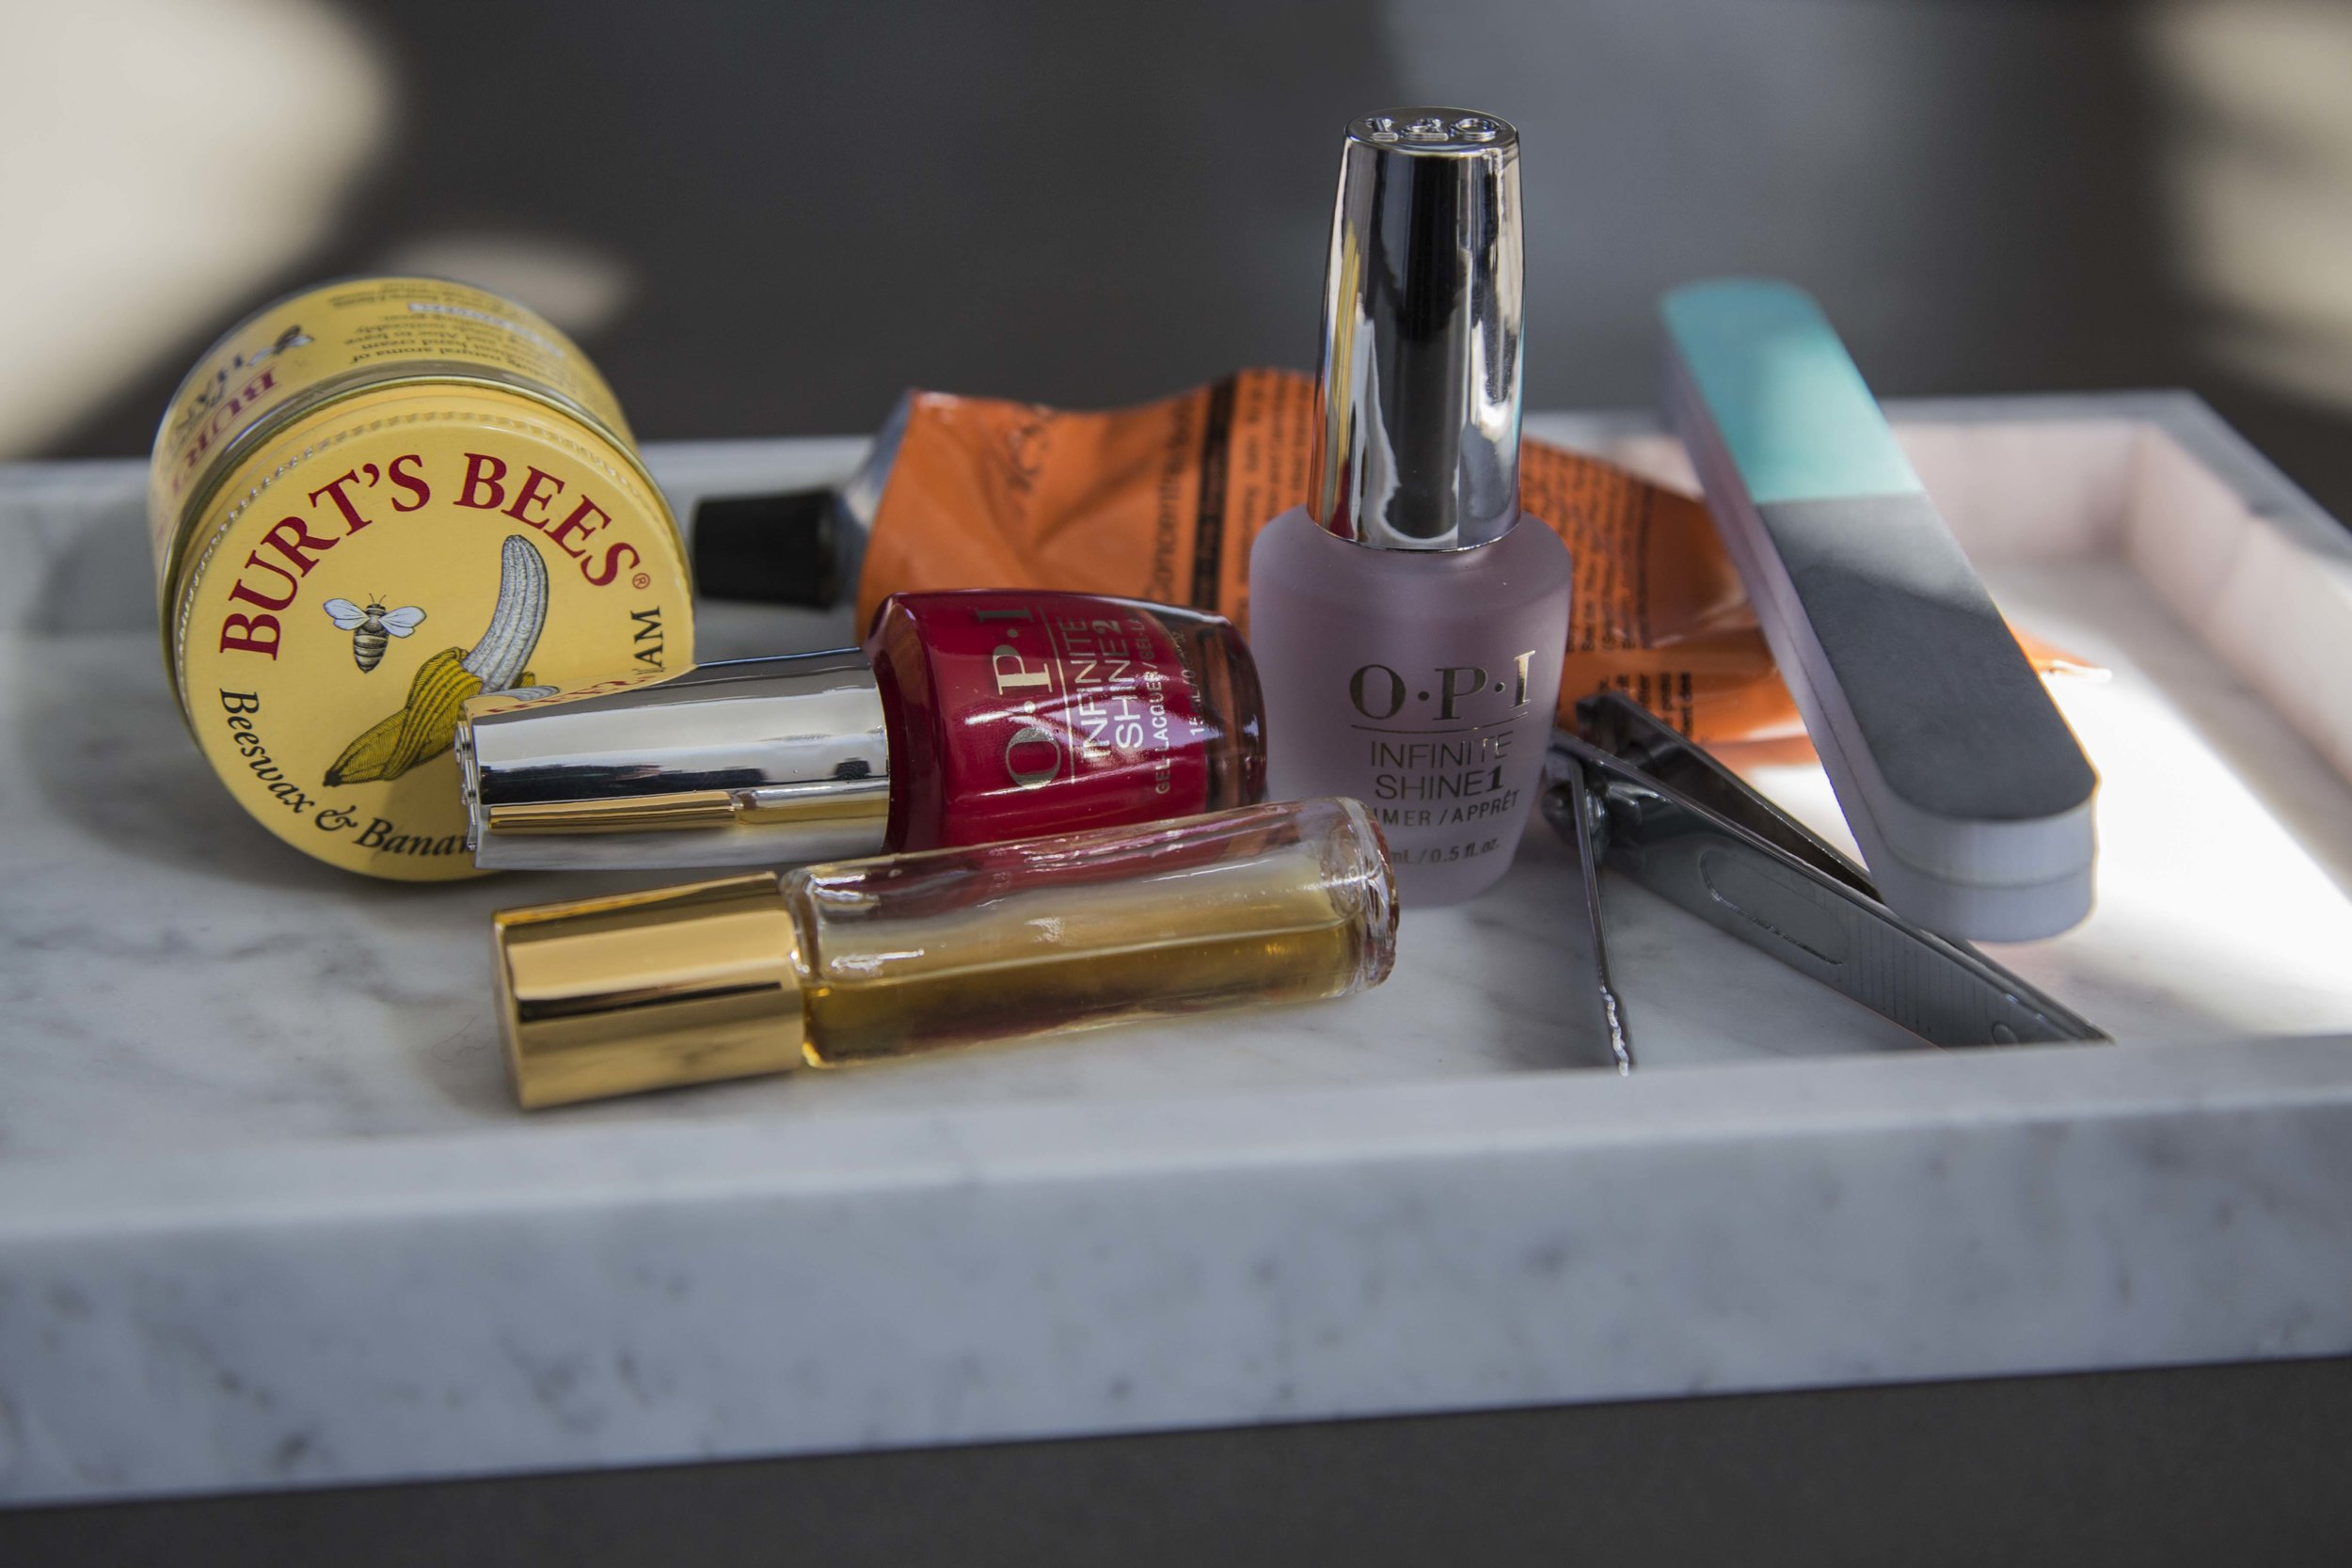 Taking Care of Your Nails When You Have a Nail Polish Obsession:Burt's Bees Beeswax & Banana Hand Cream, Cuticle Oil, OPI Infinite Shine, Aesop Body Lotion, Nail Clippers and Buffer